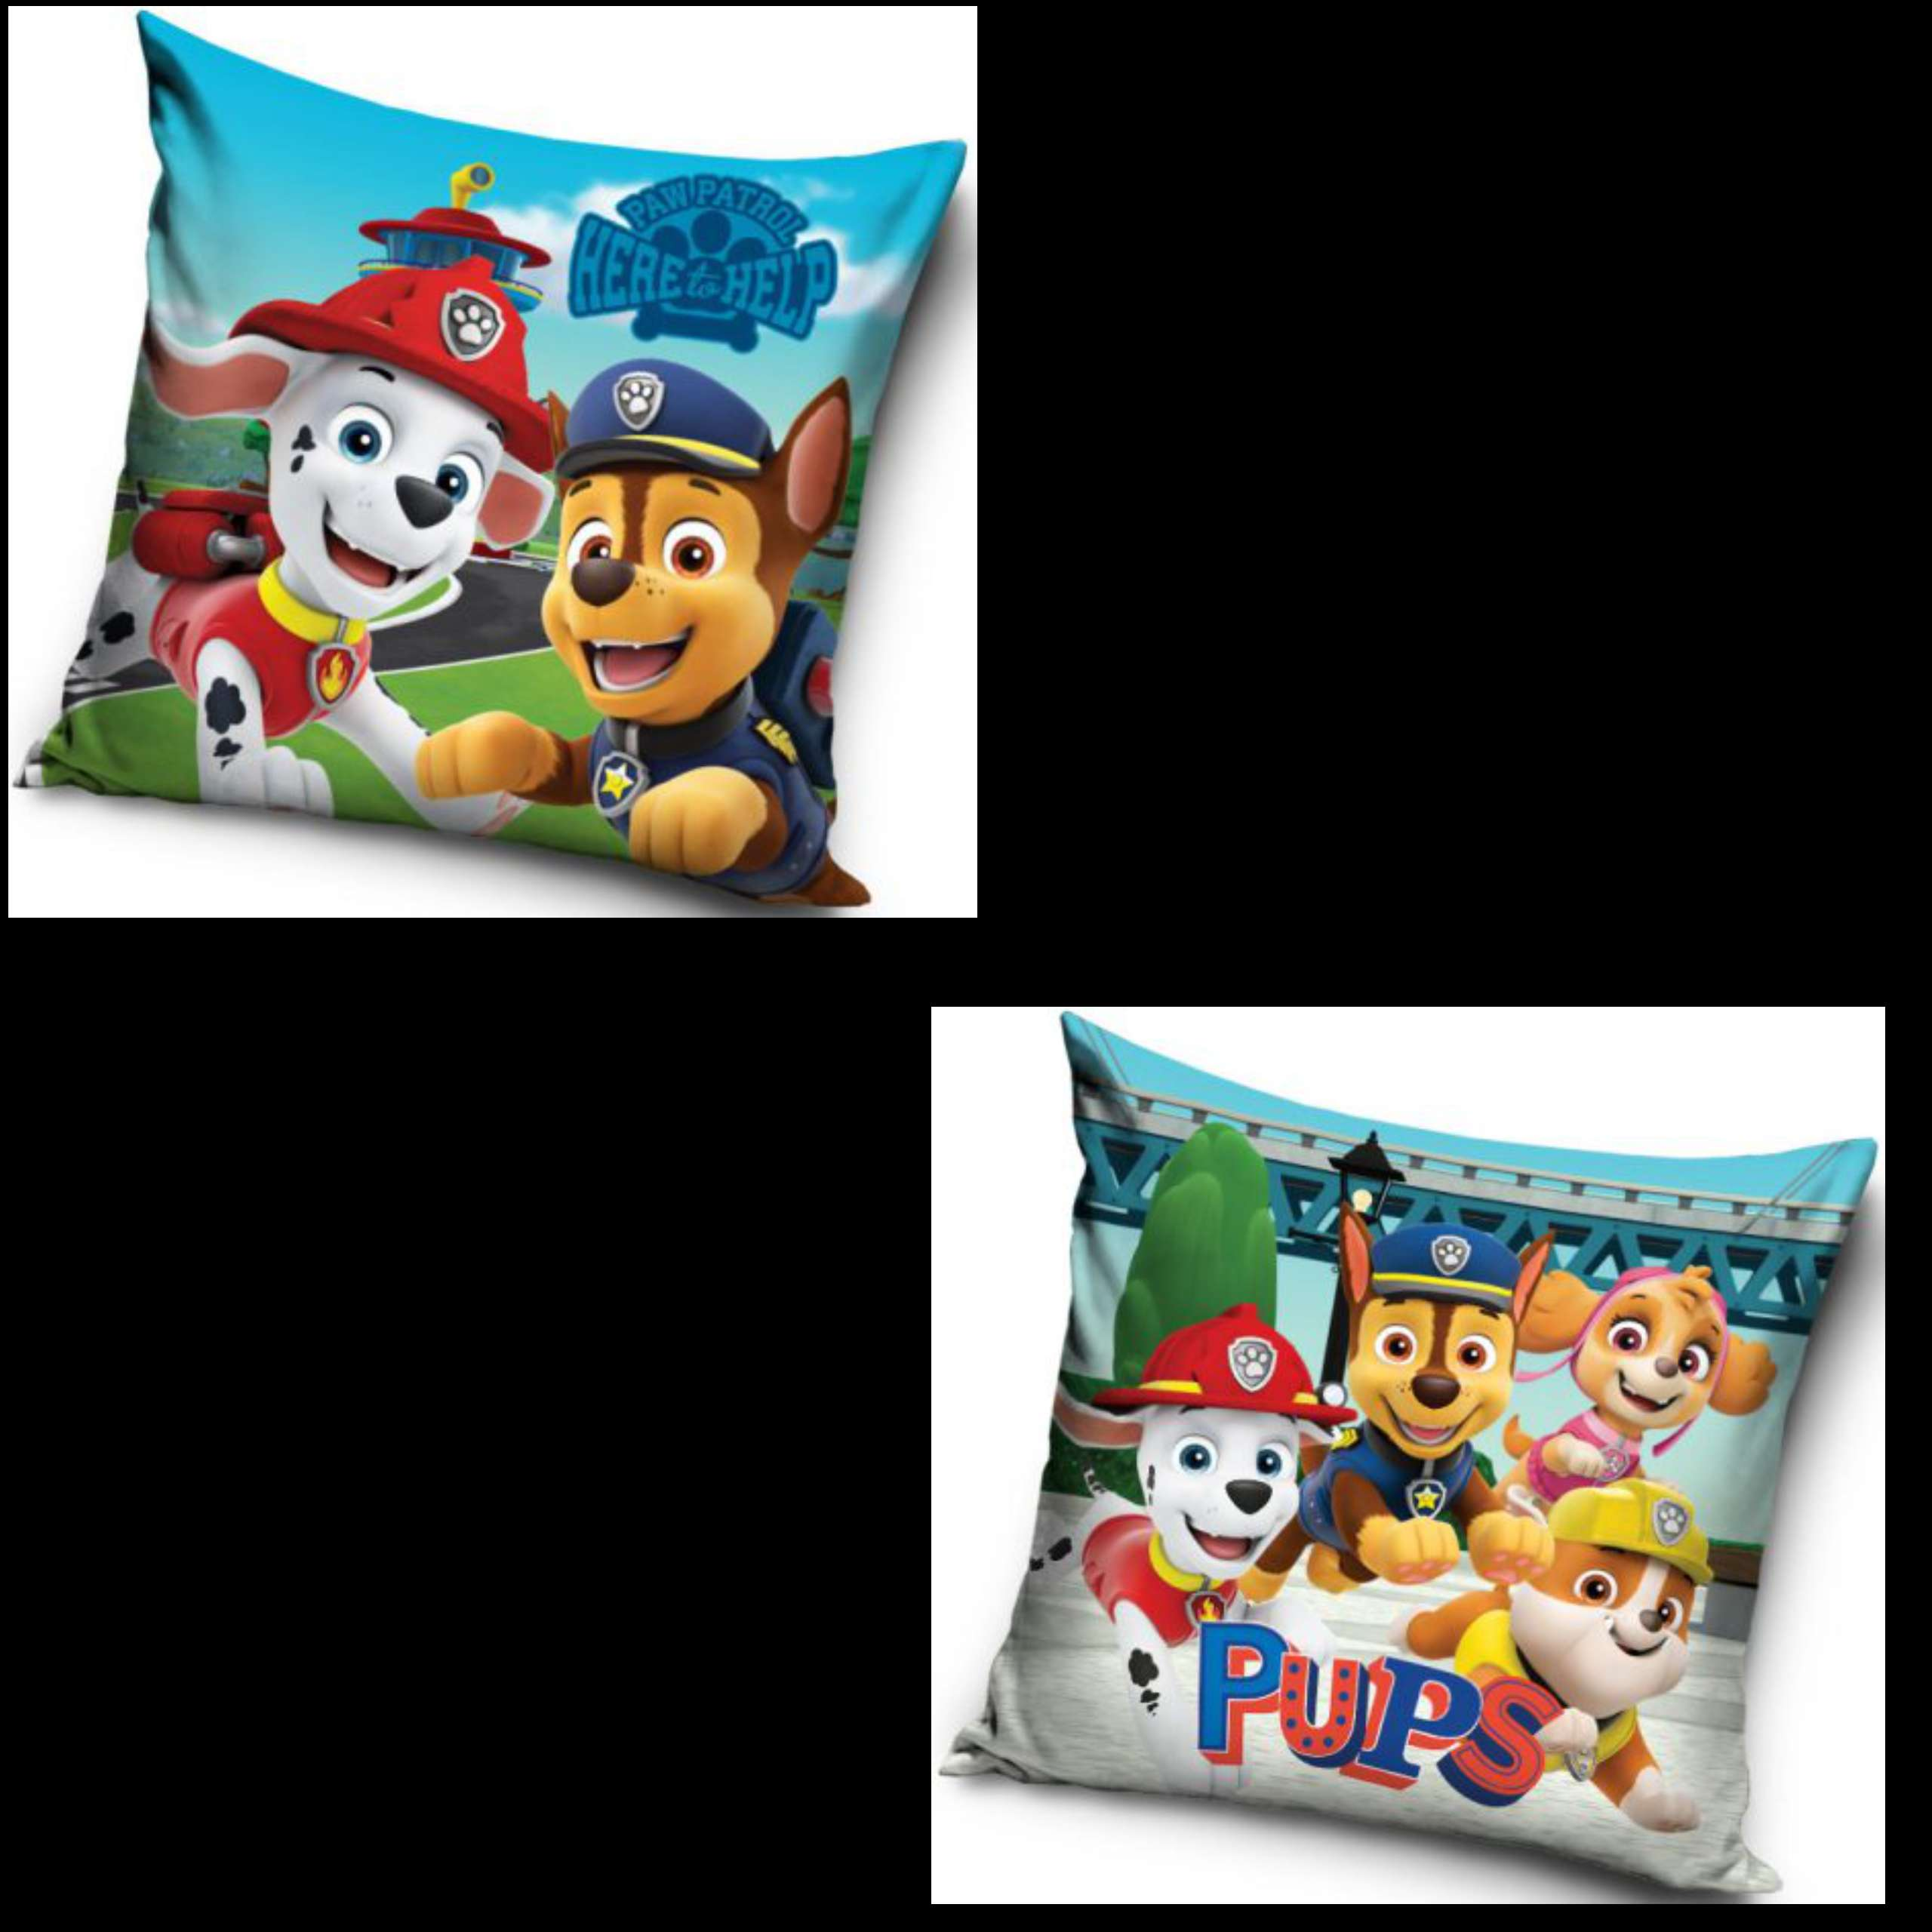 Paw Patrol Here To Help And Pups Two Pack Cushion Set